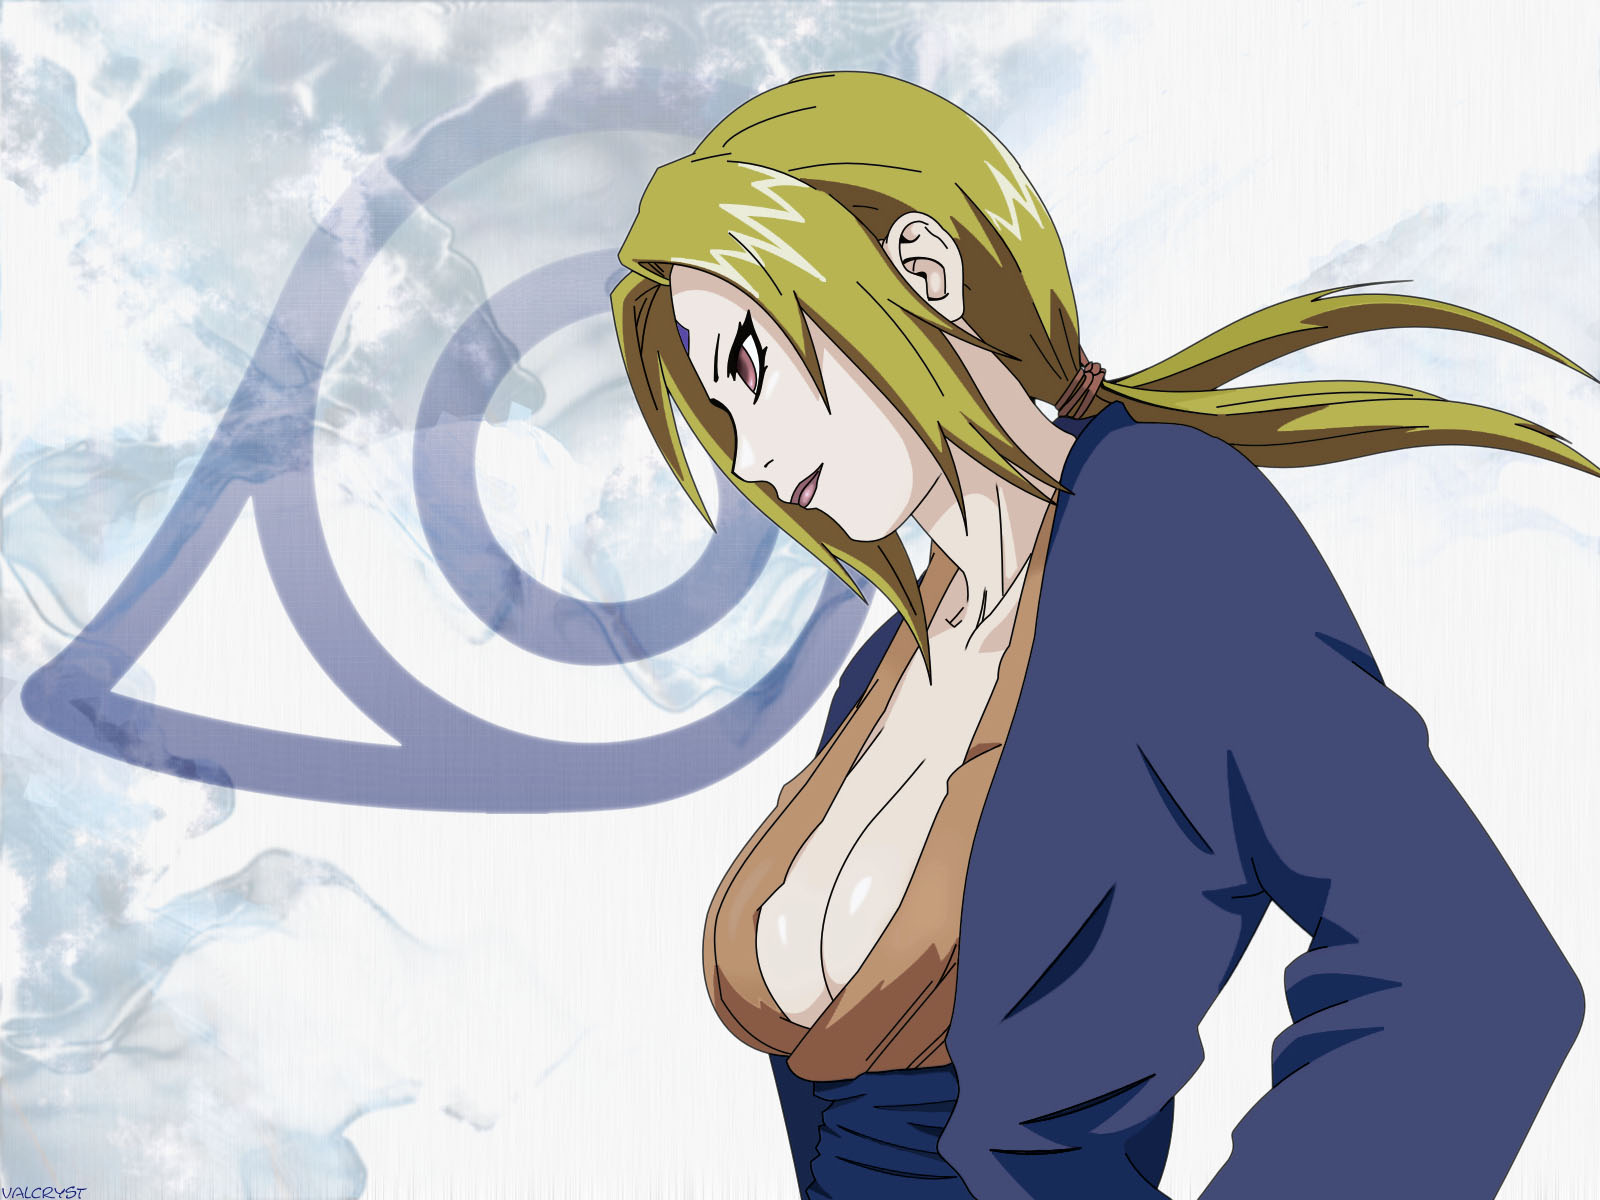 Tsunade submited images 1600x1200